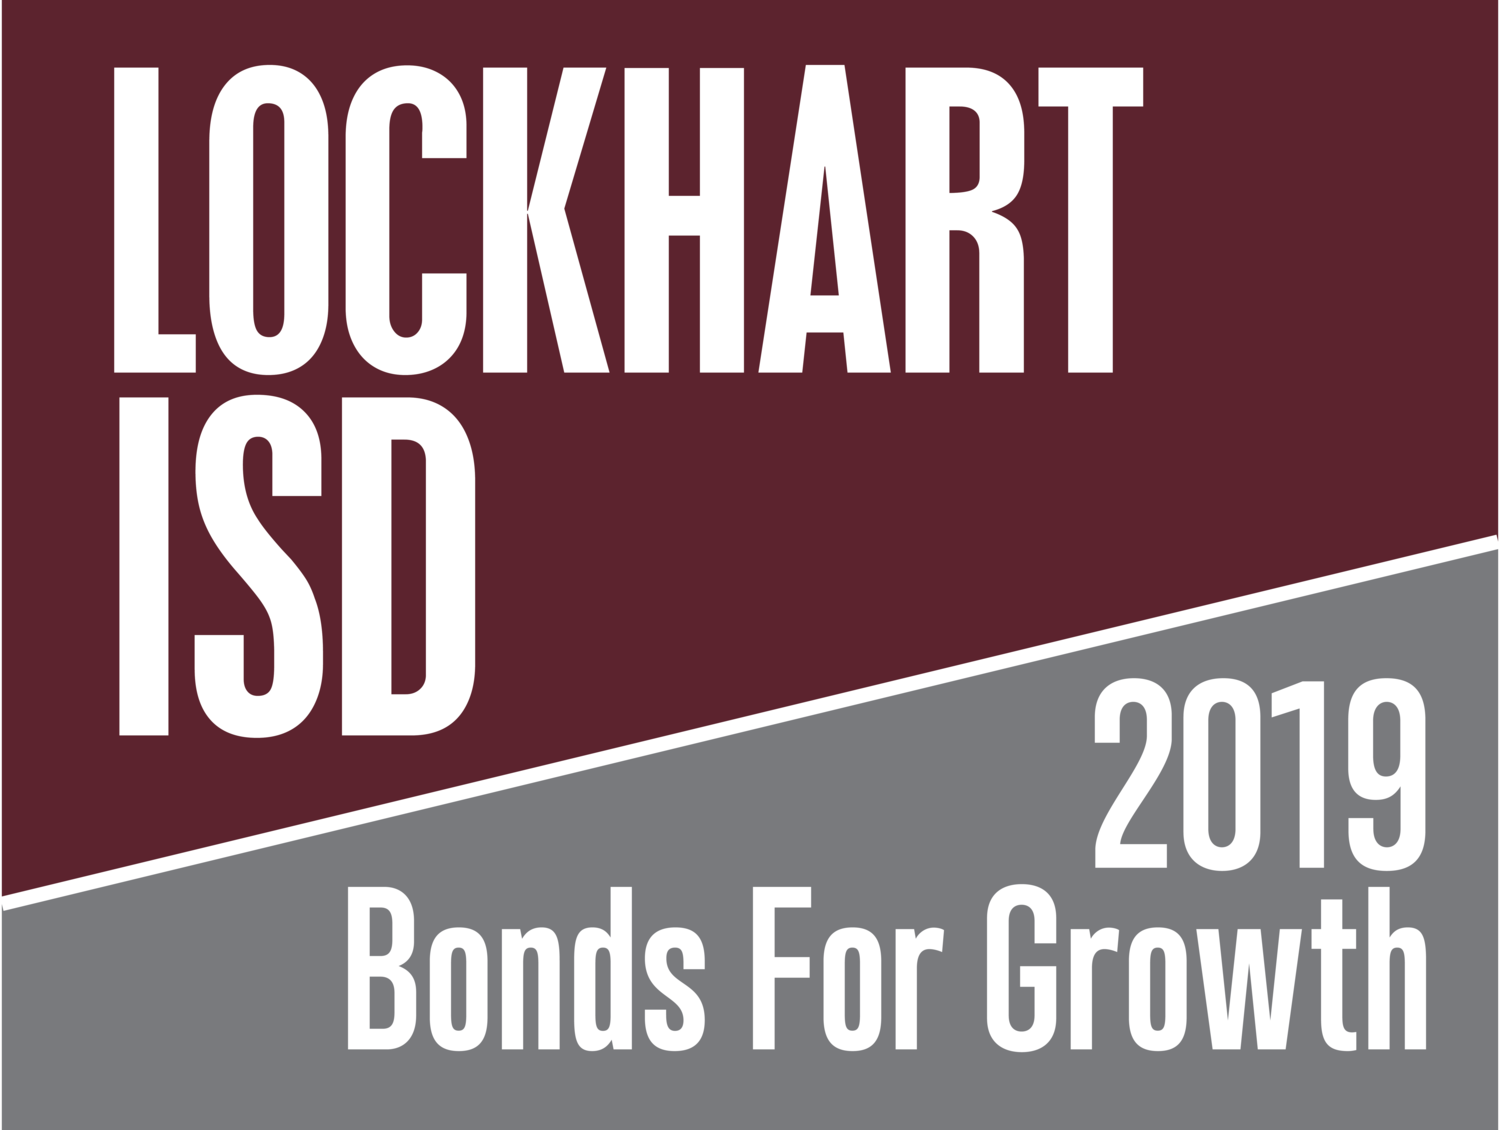 Lockhart ISD Bond Referendum